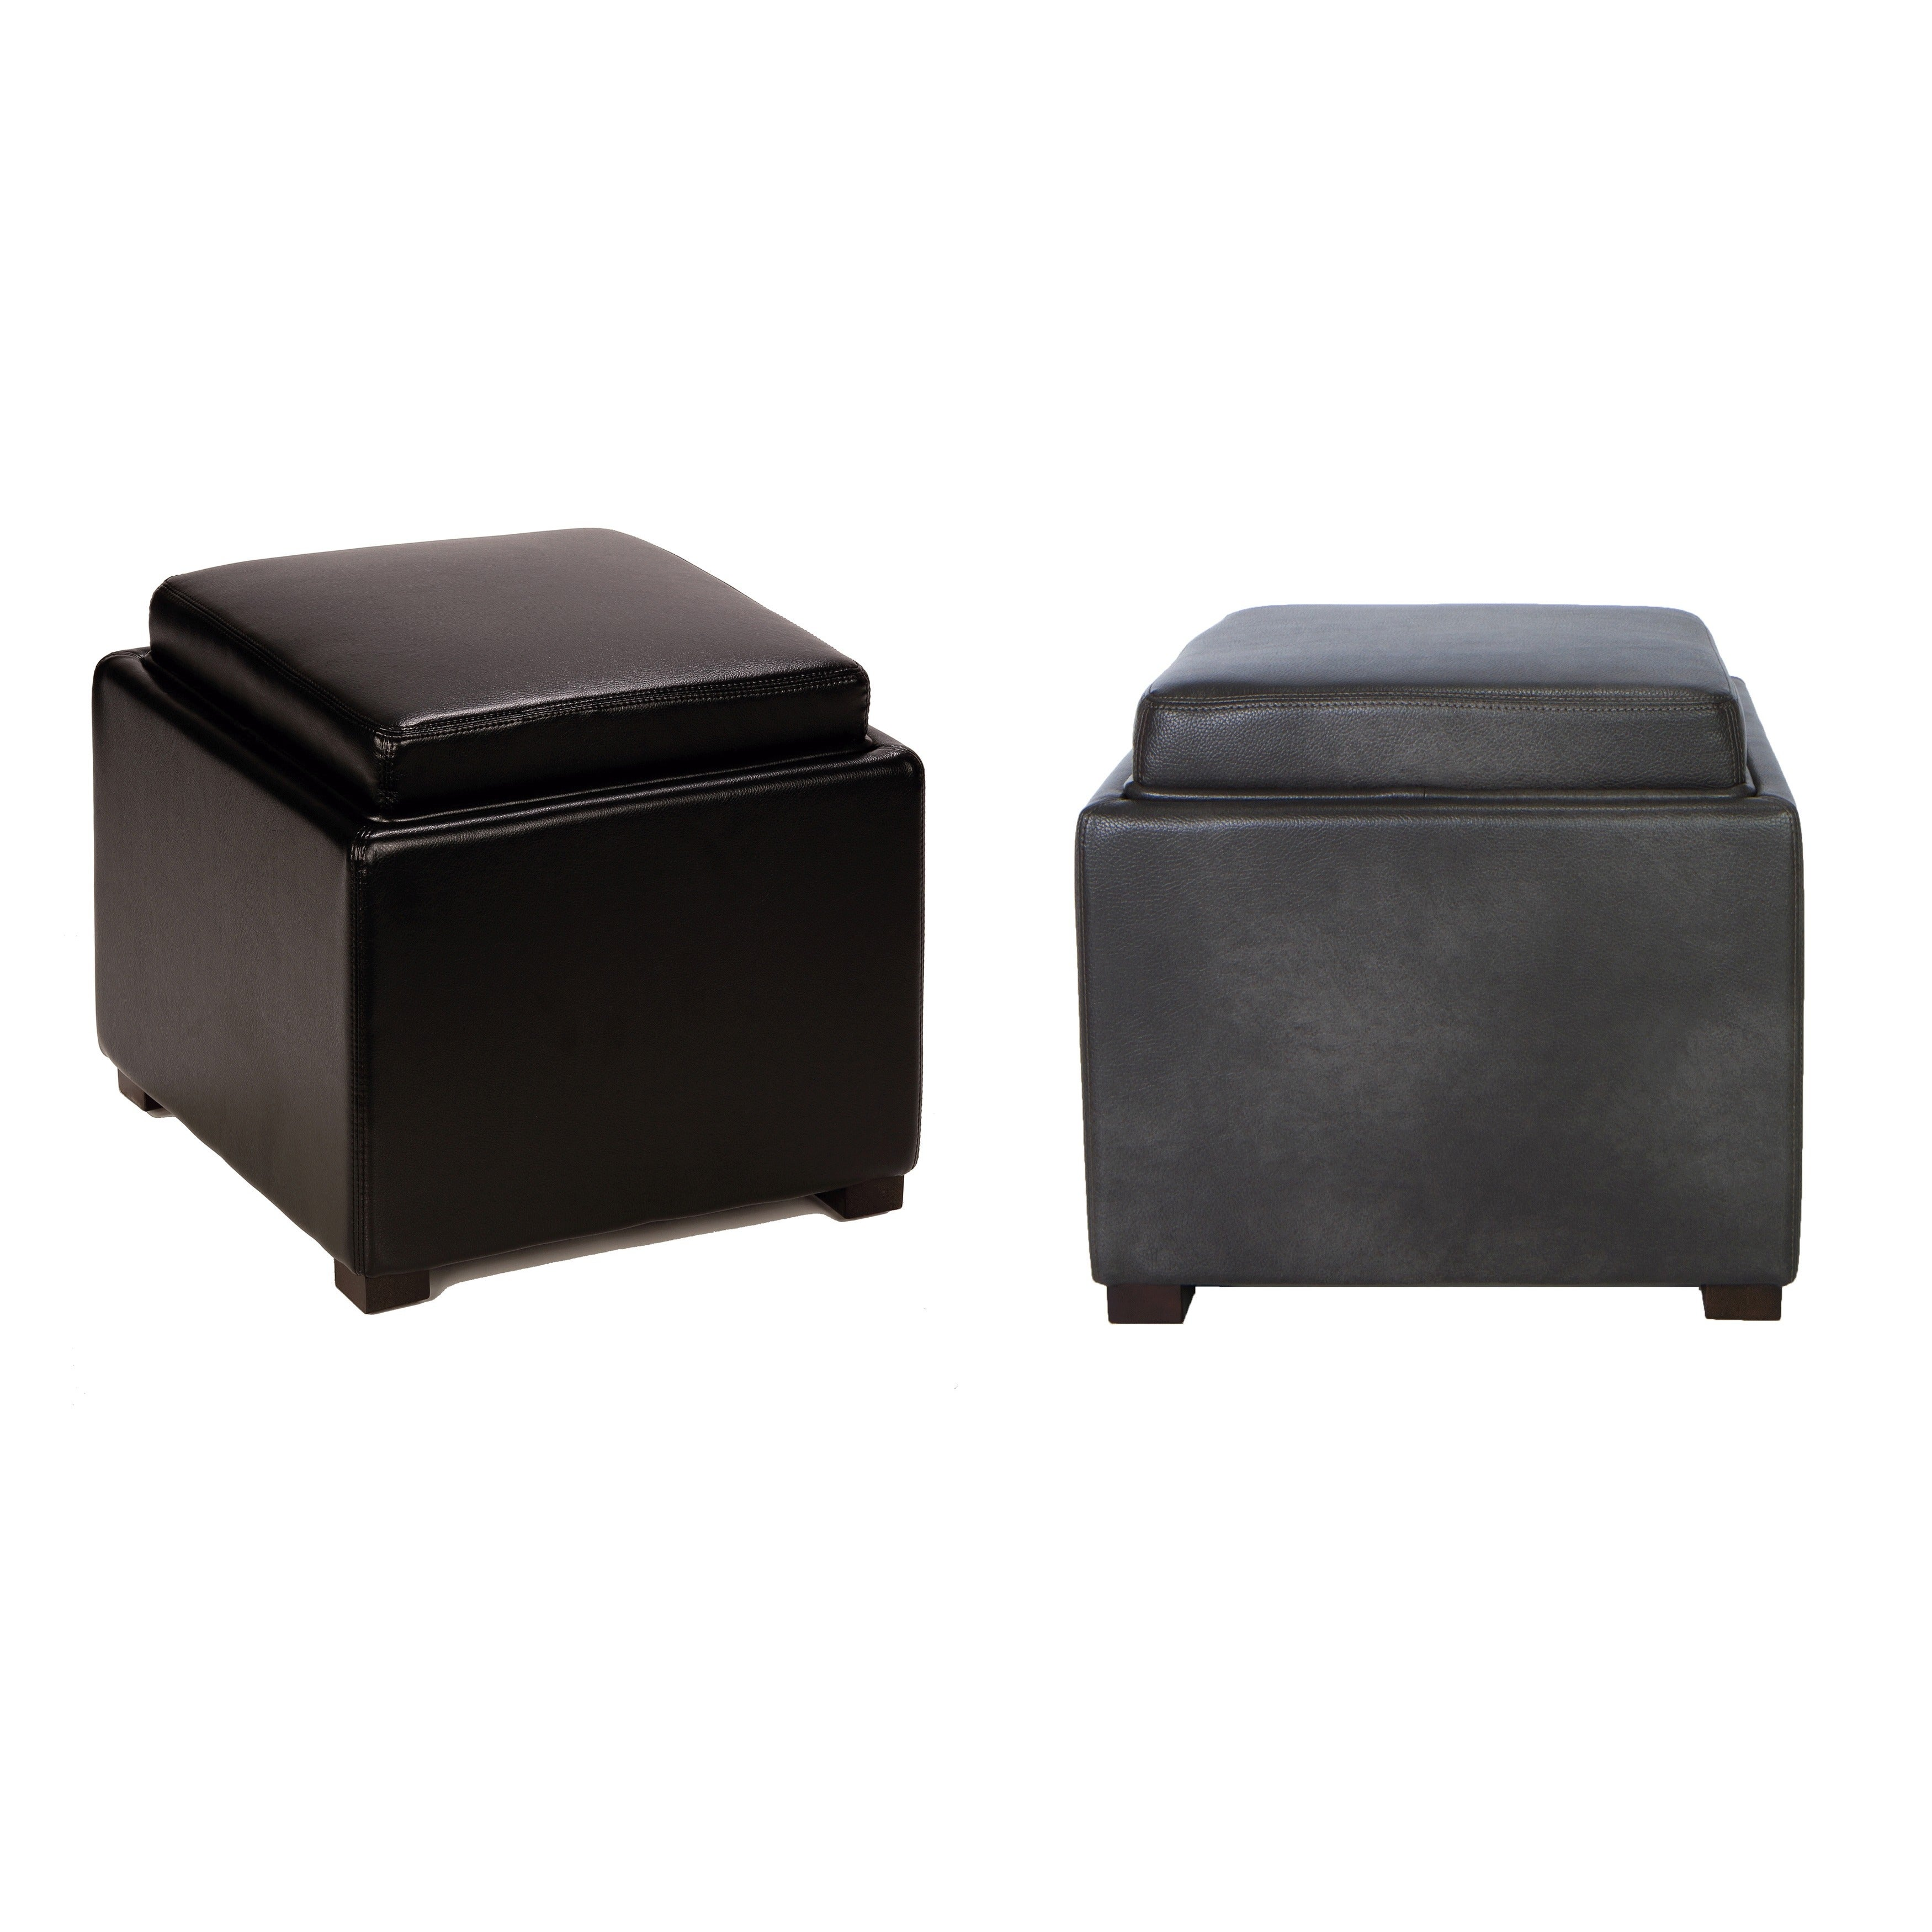 Stupendous Cortesi Home Bonded Leather Mavi Black Storage Tray Ottoman Alphanode Cool Chair Designs And Ideas Alphanodeonline